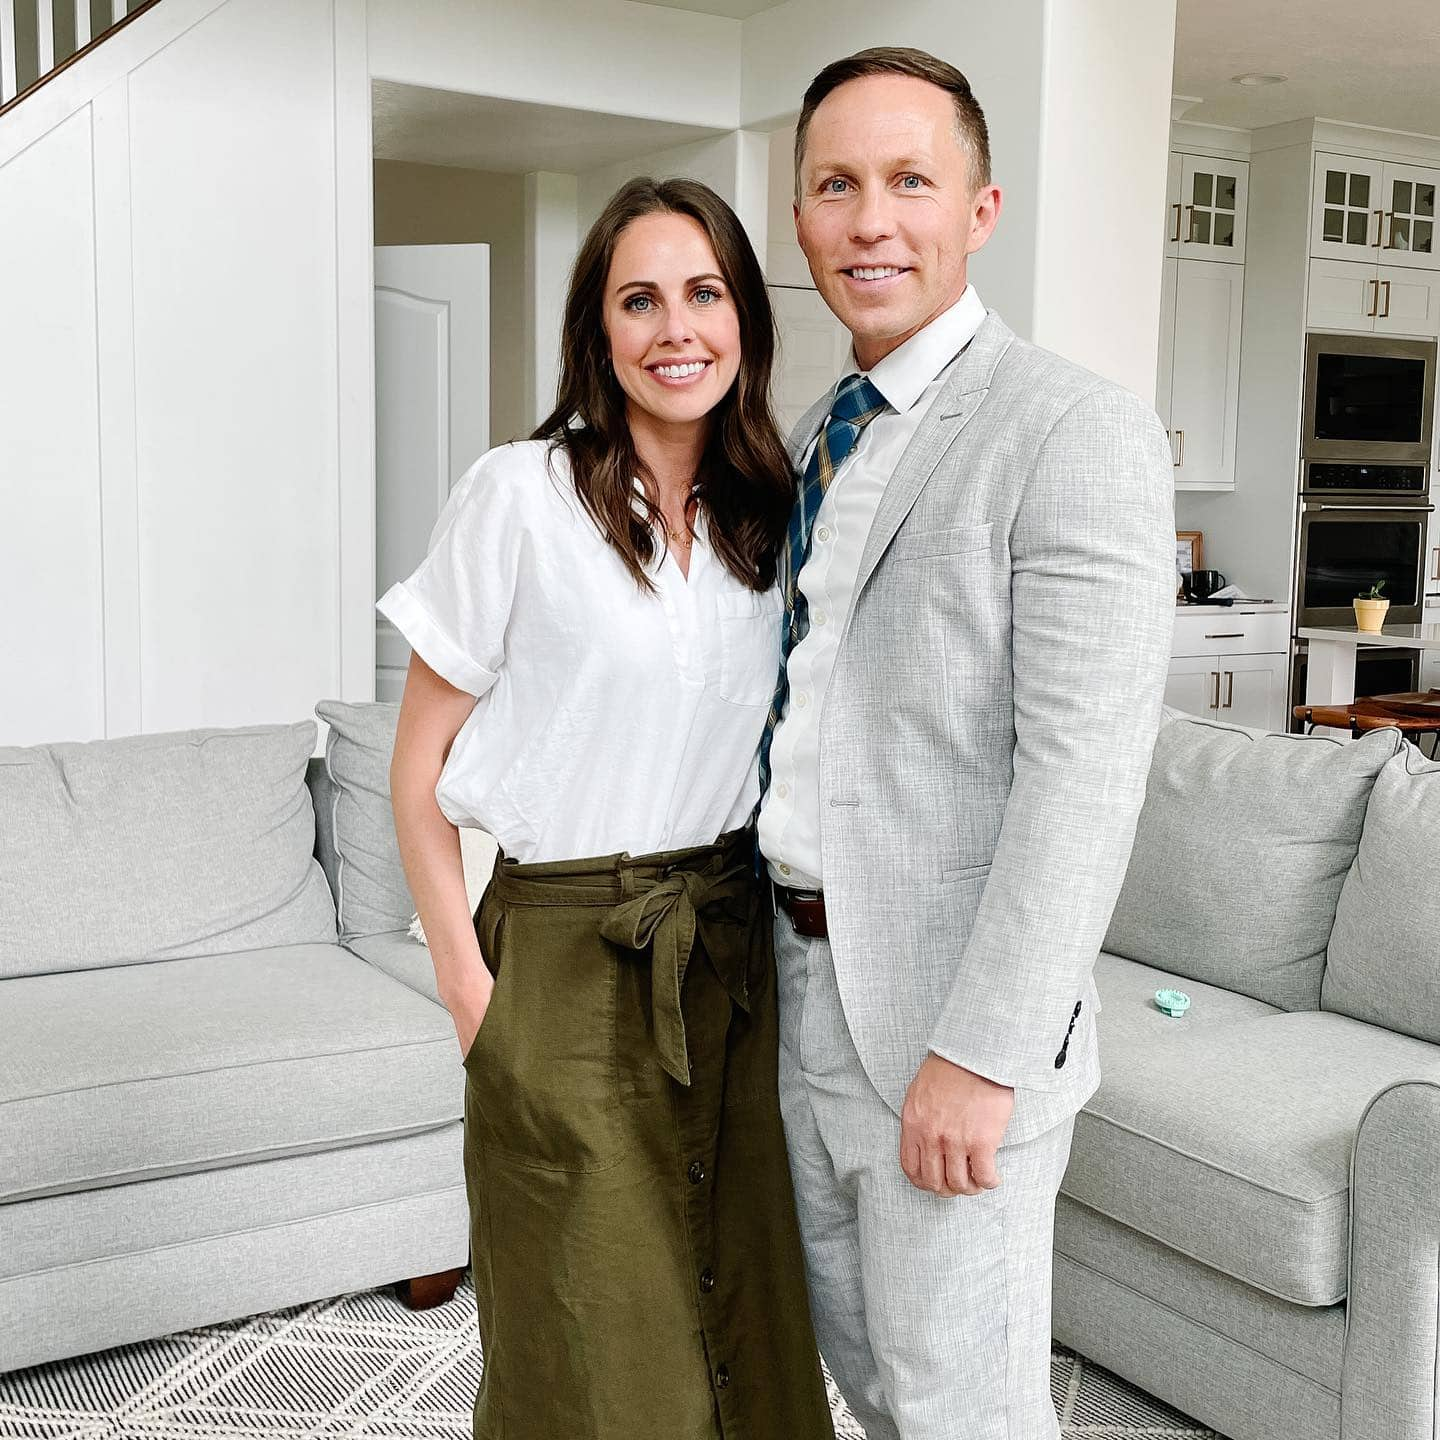 a photo of a husband and wife standing in front of a gray couch in Sunday dress.